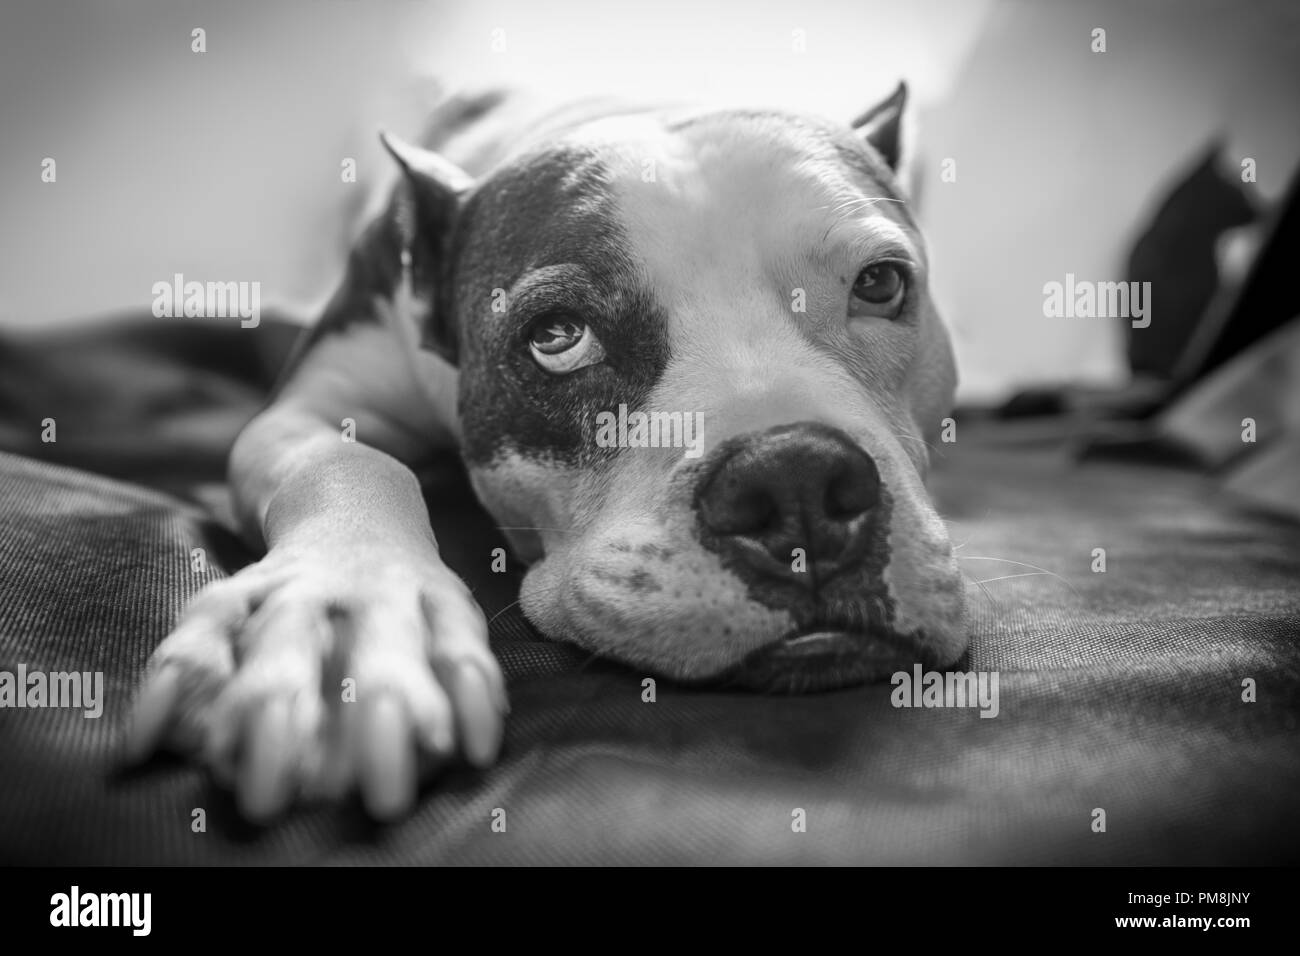 An old American Staffordshire Terrier Pitbull dog lays on a blanket with bright backlighting and a sleepy exhausted wistful look on its face - Stock Image